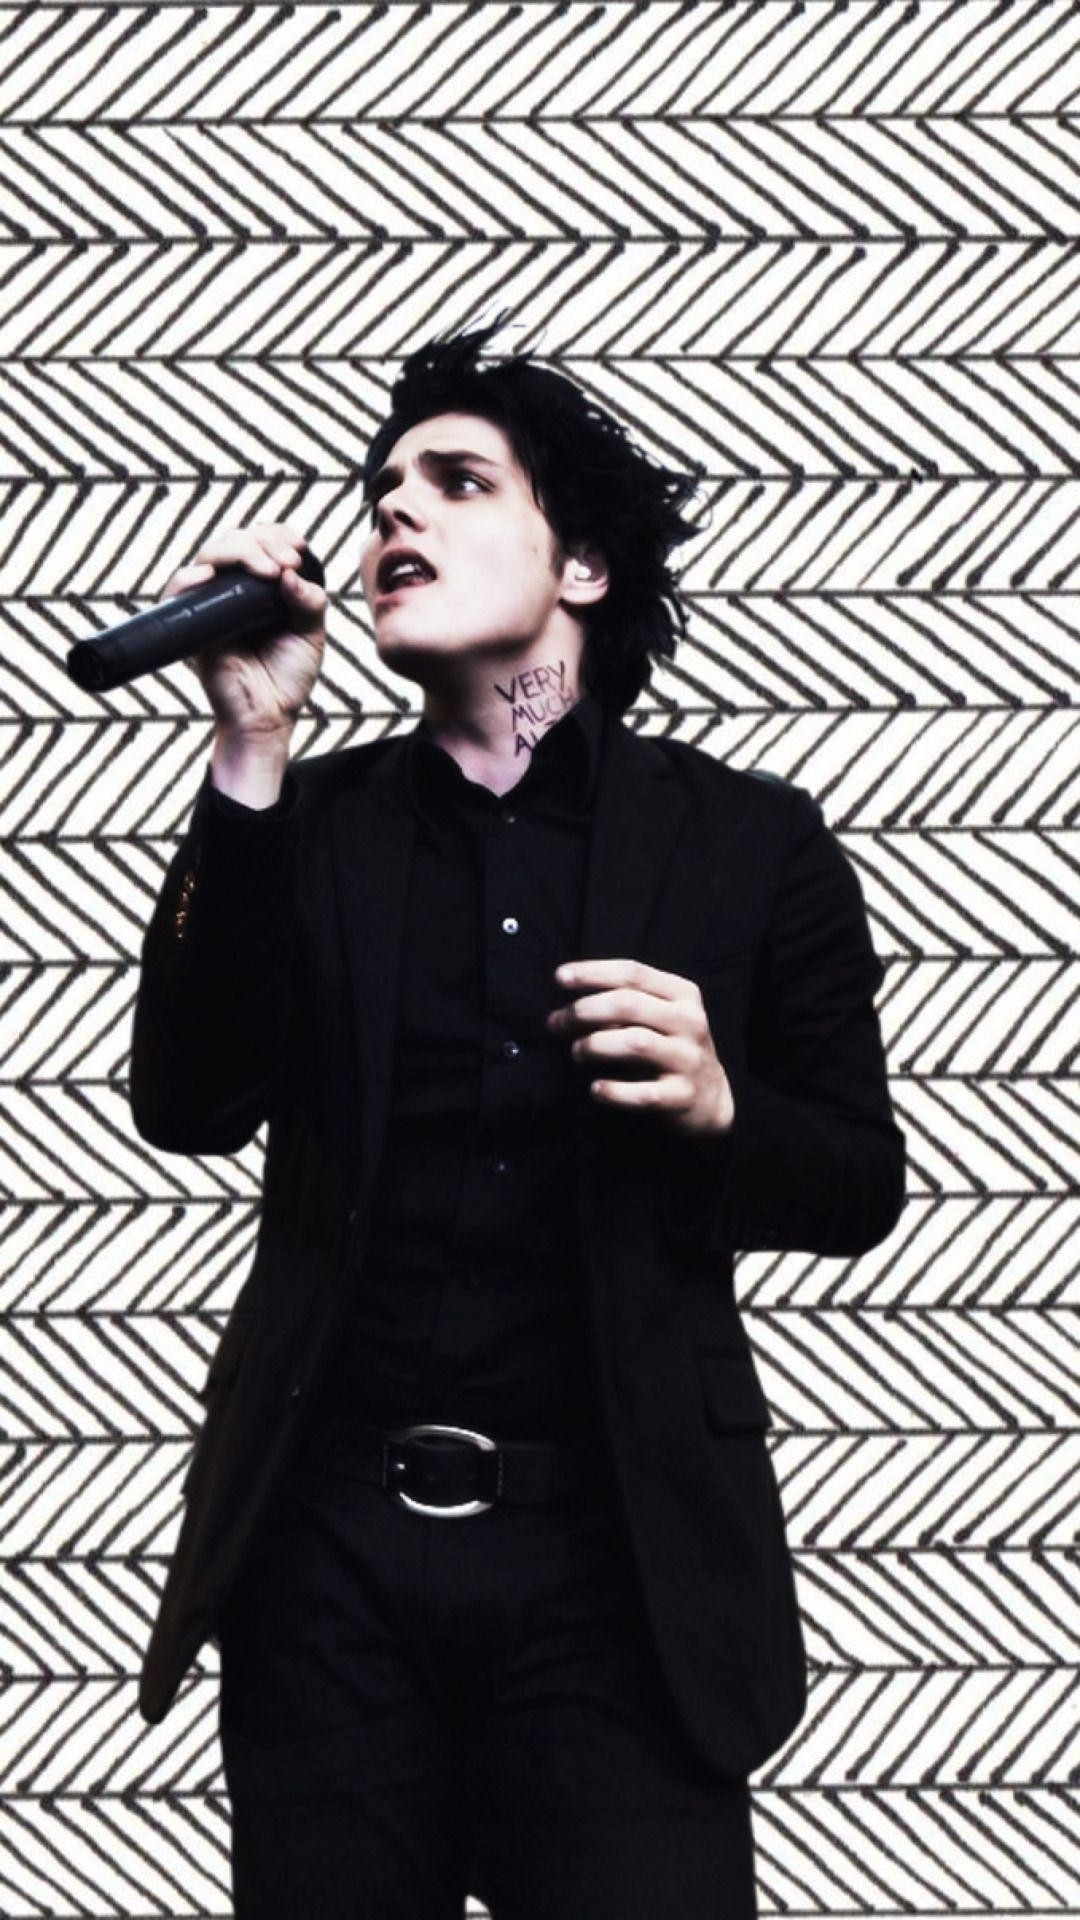 gerard way wallpapers (75+ images)